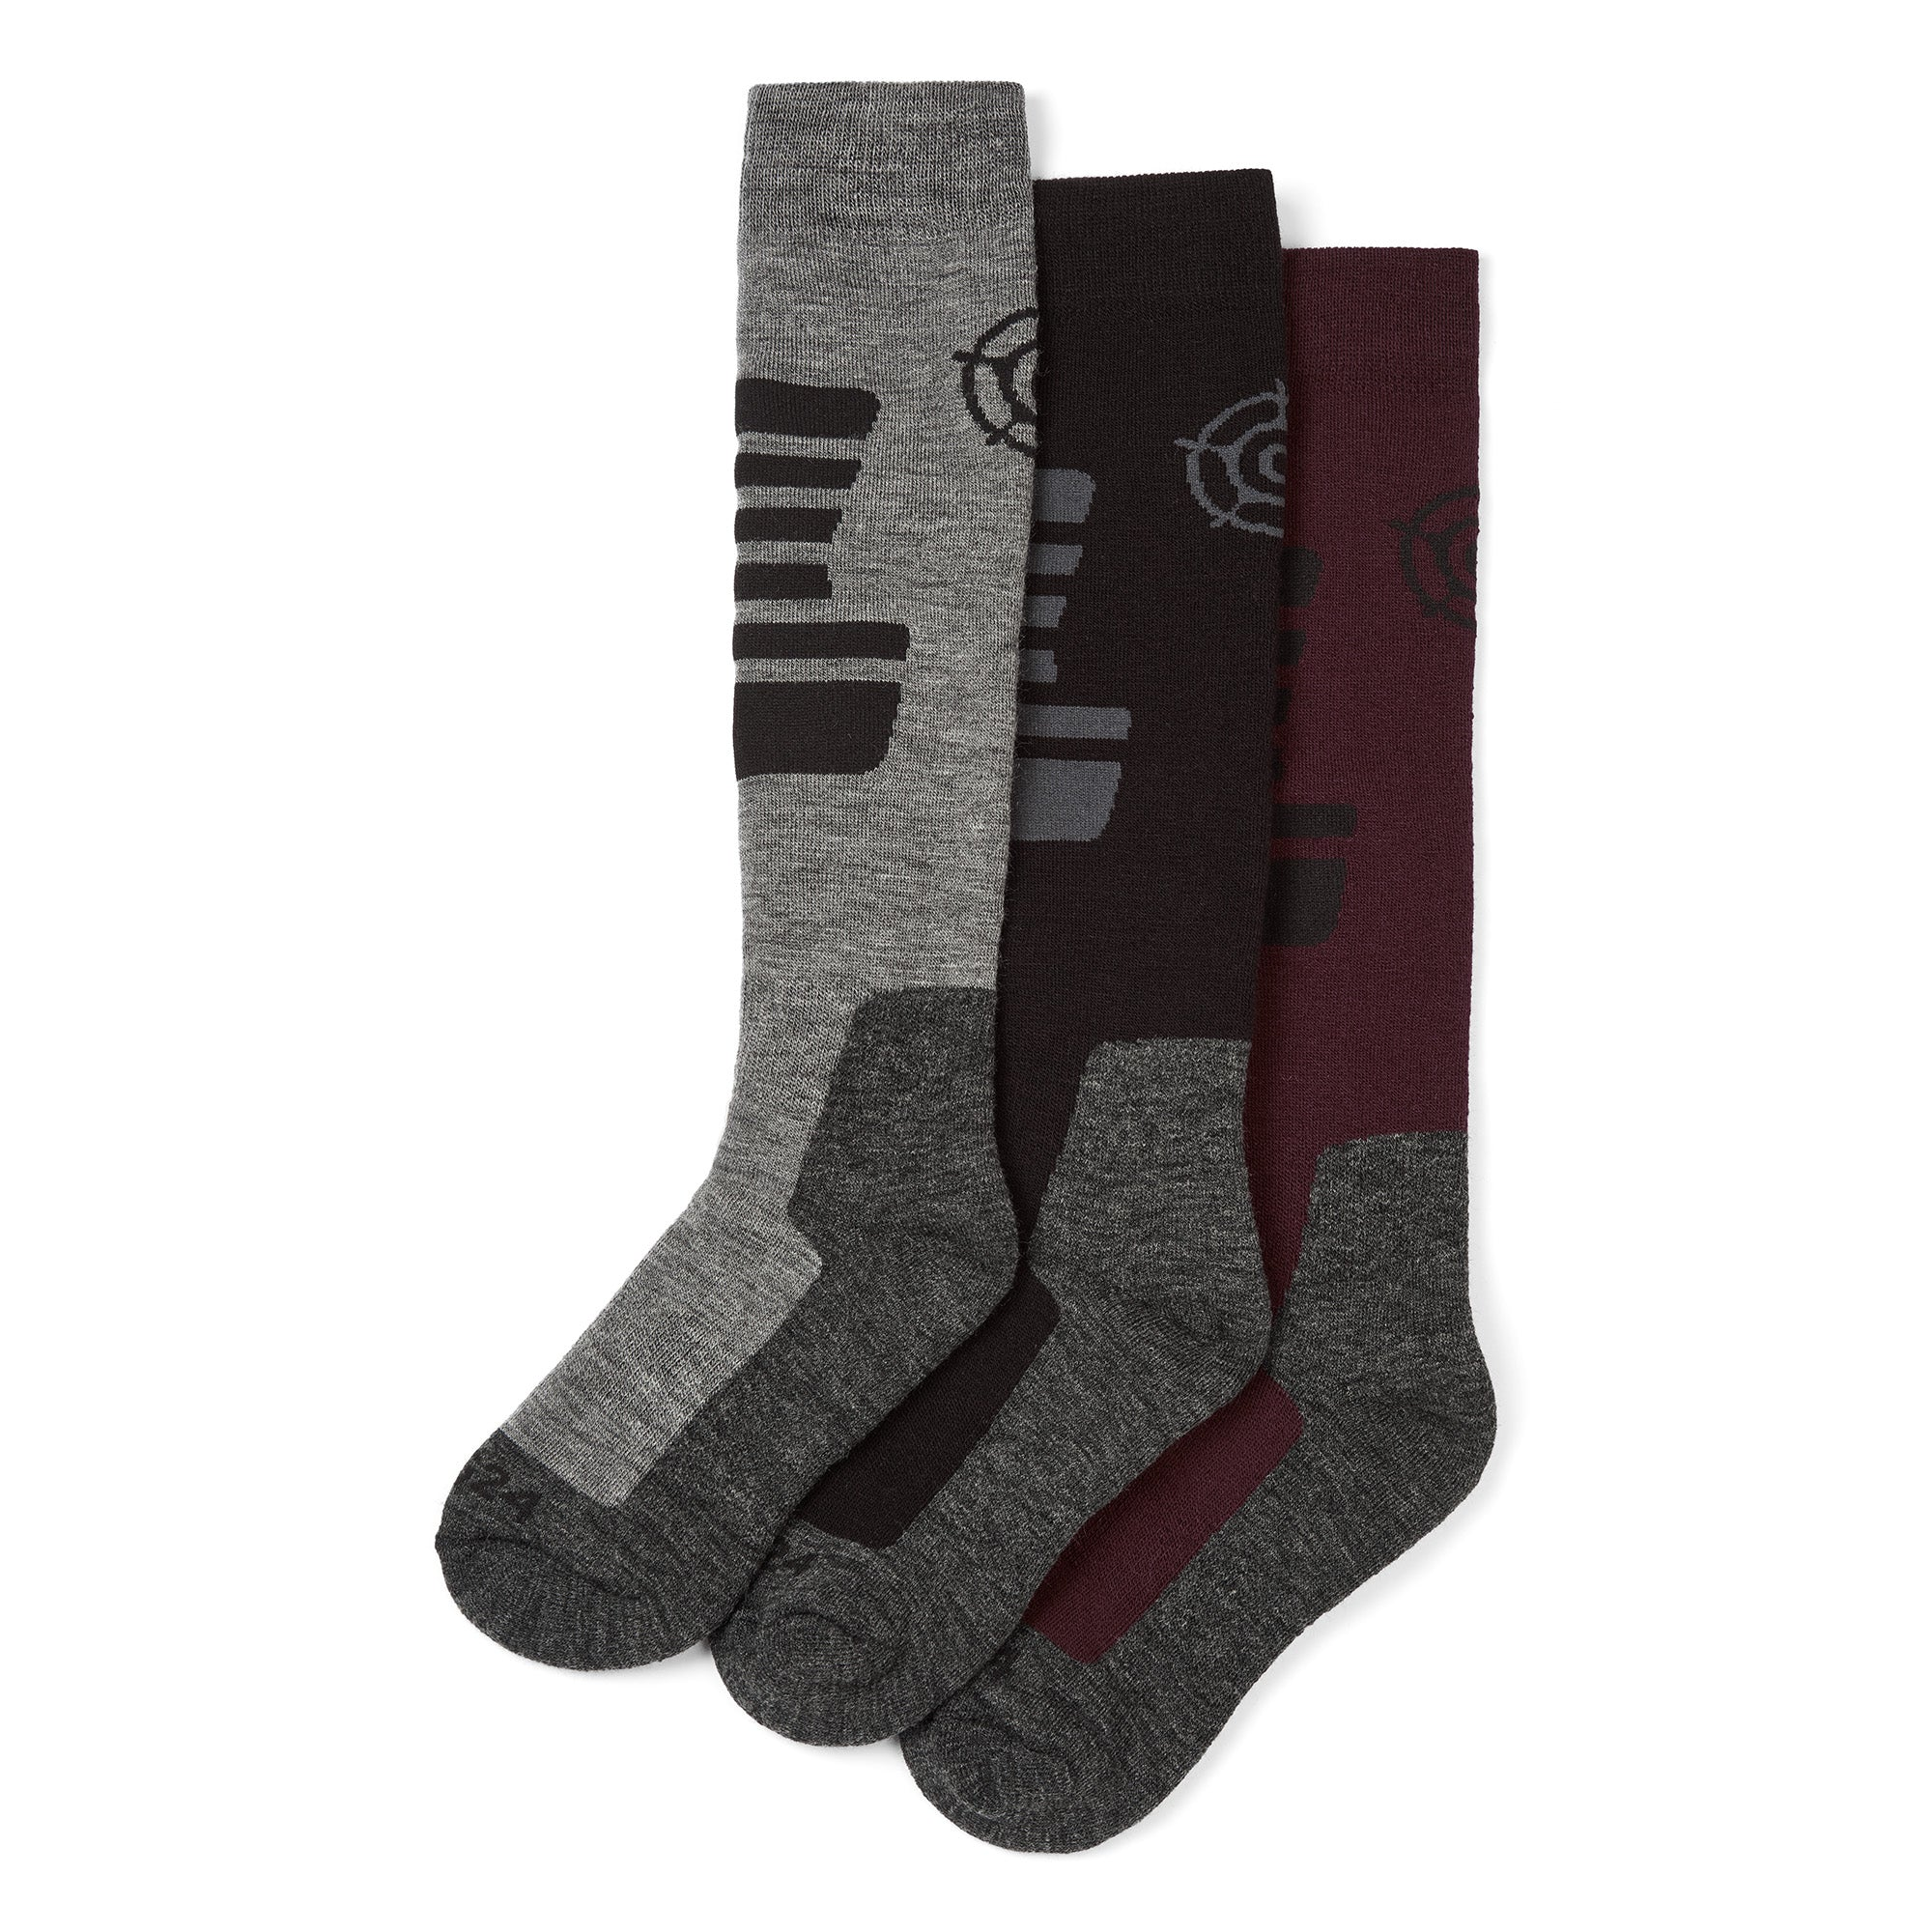 Oberau Womens 3 Pack Merino Ski Socks - Deep Port/Black/Grey Marl